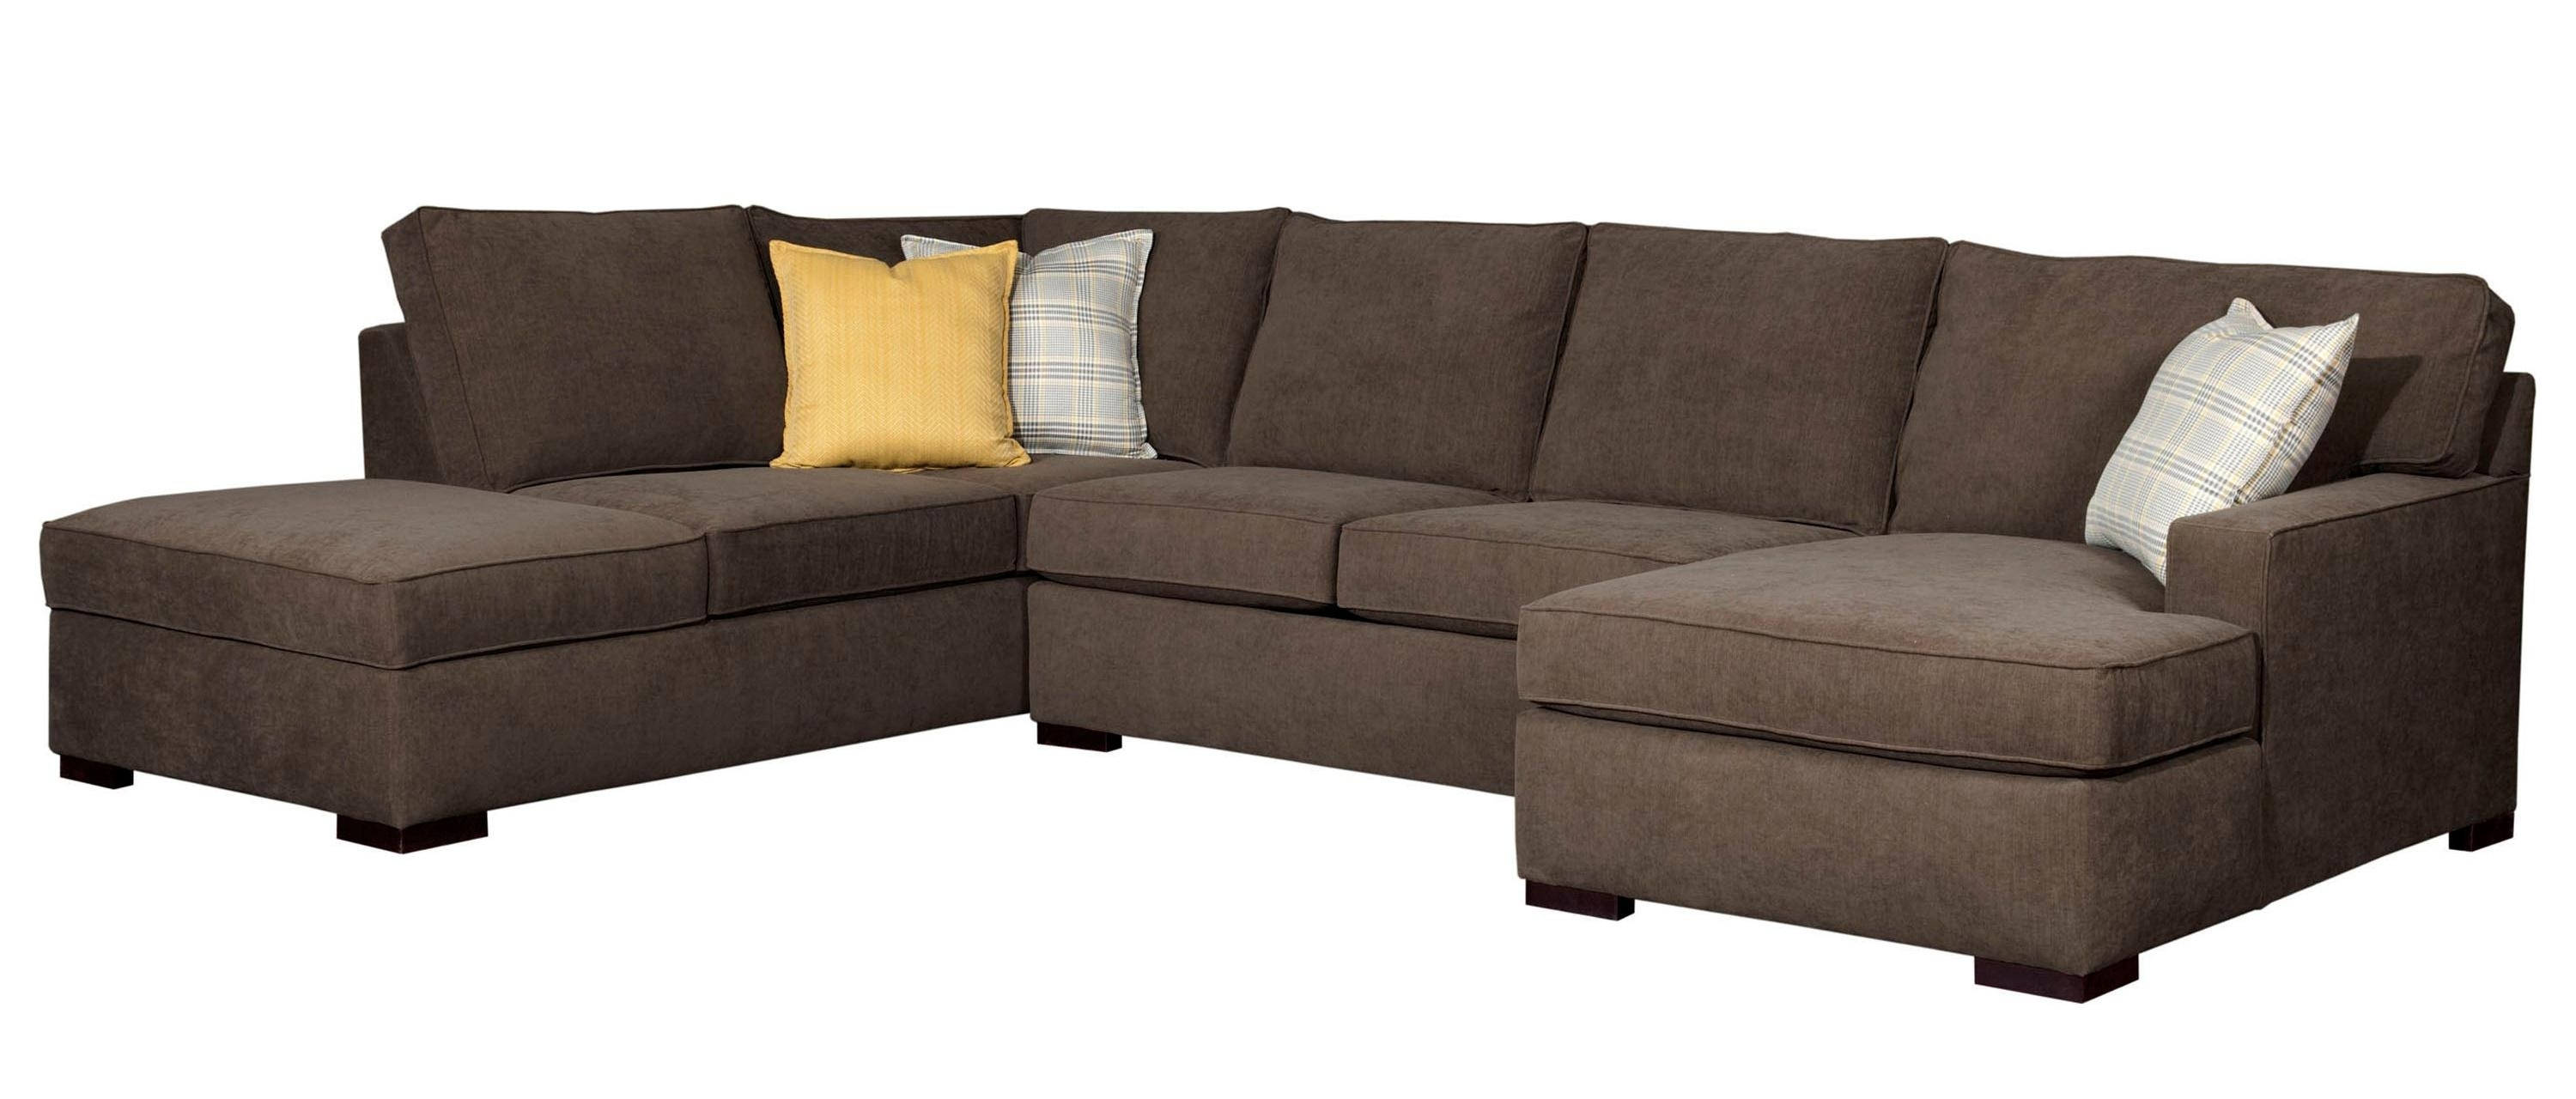 Current Sectional Chaise Sofas Inside Sectional Sofa Design: Sofa Sectional With Chaise Lounge Cheap (View 3 of 15)